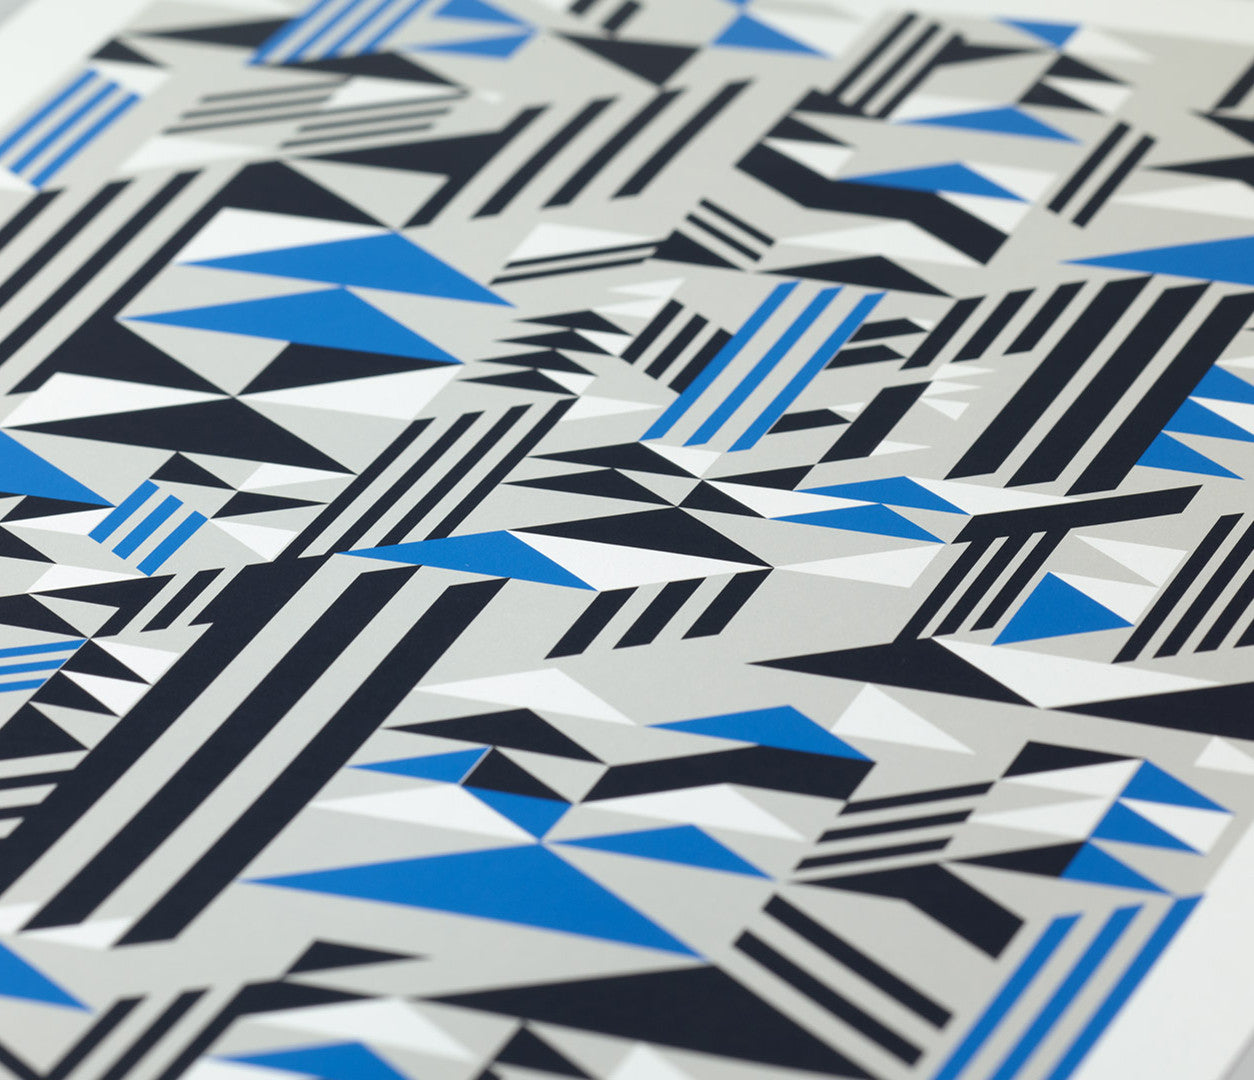 Close up of Higher Geometric Shapes in blue and grey, screen printed poster